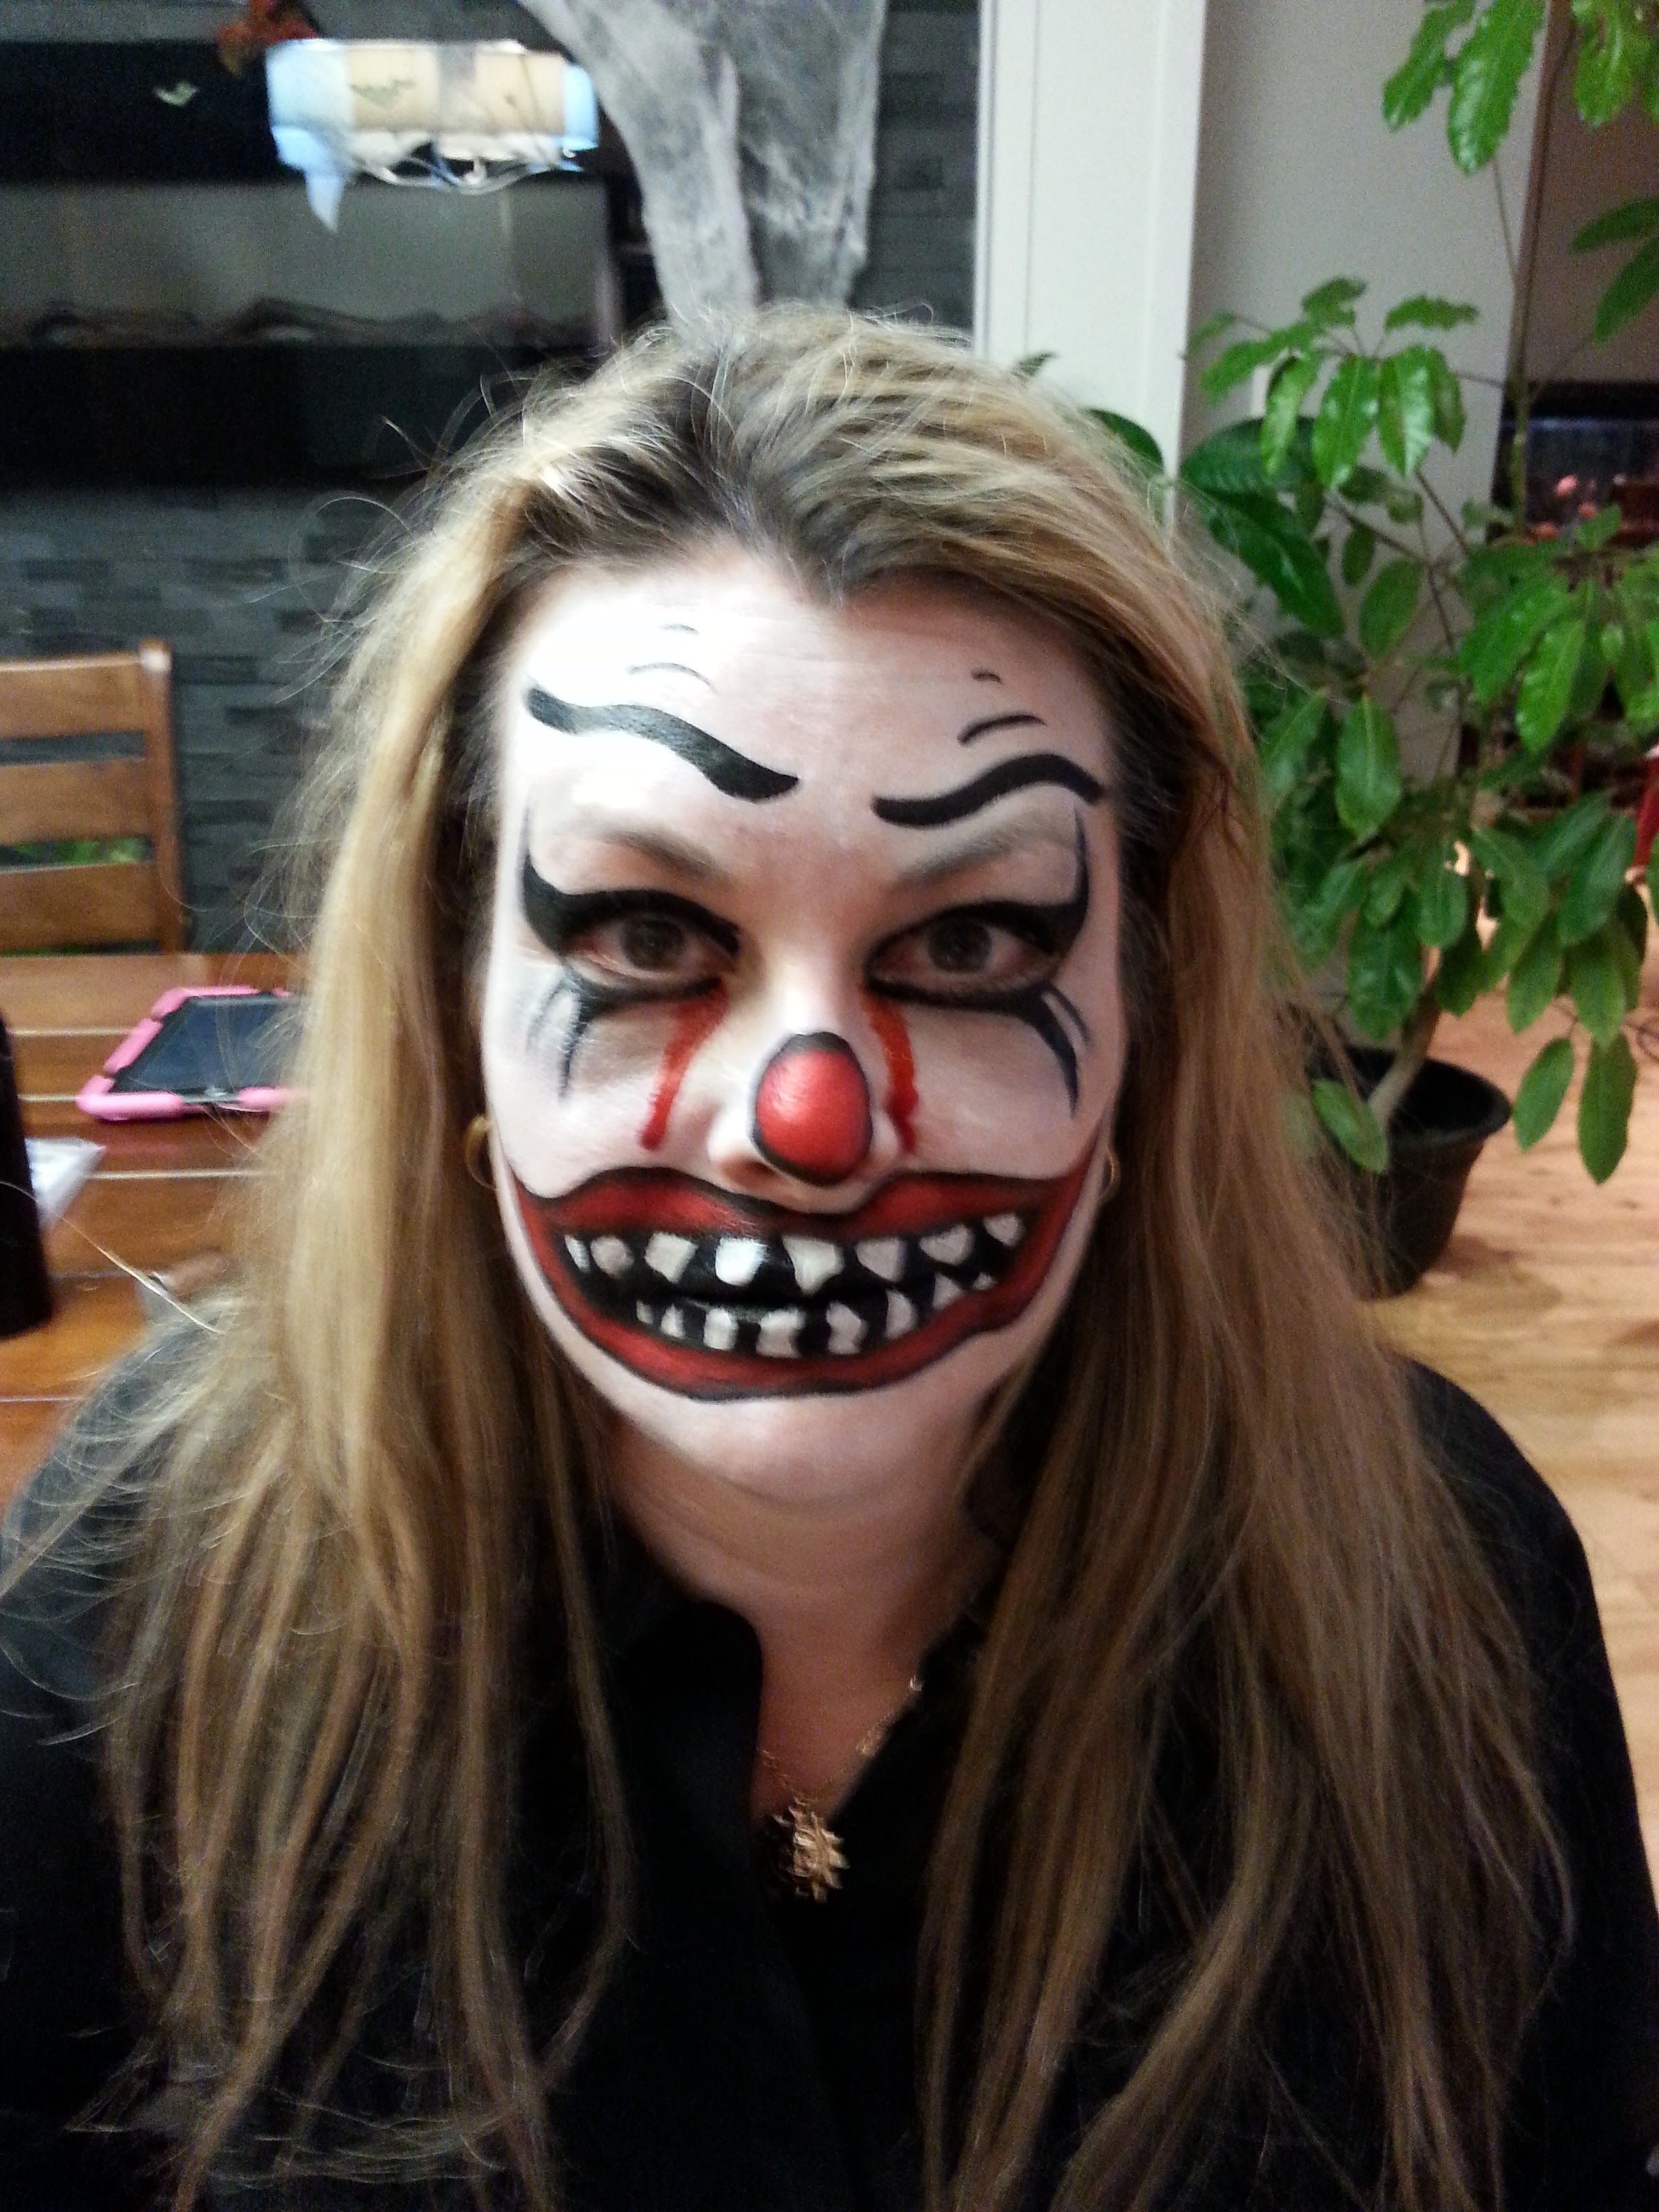 Scary clown makeup face painting.